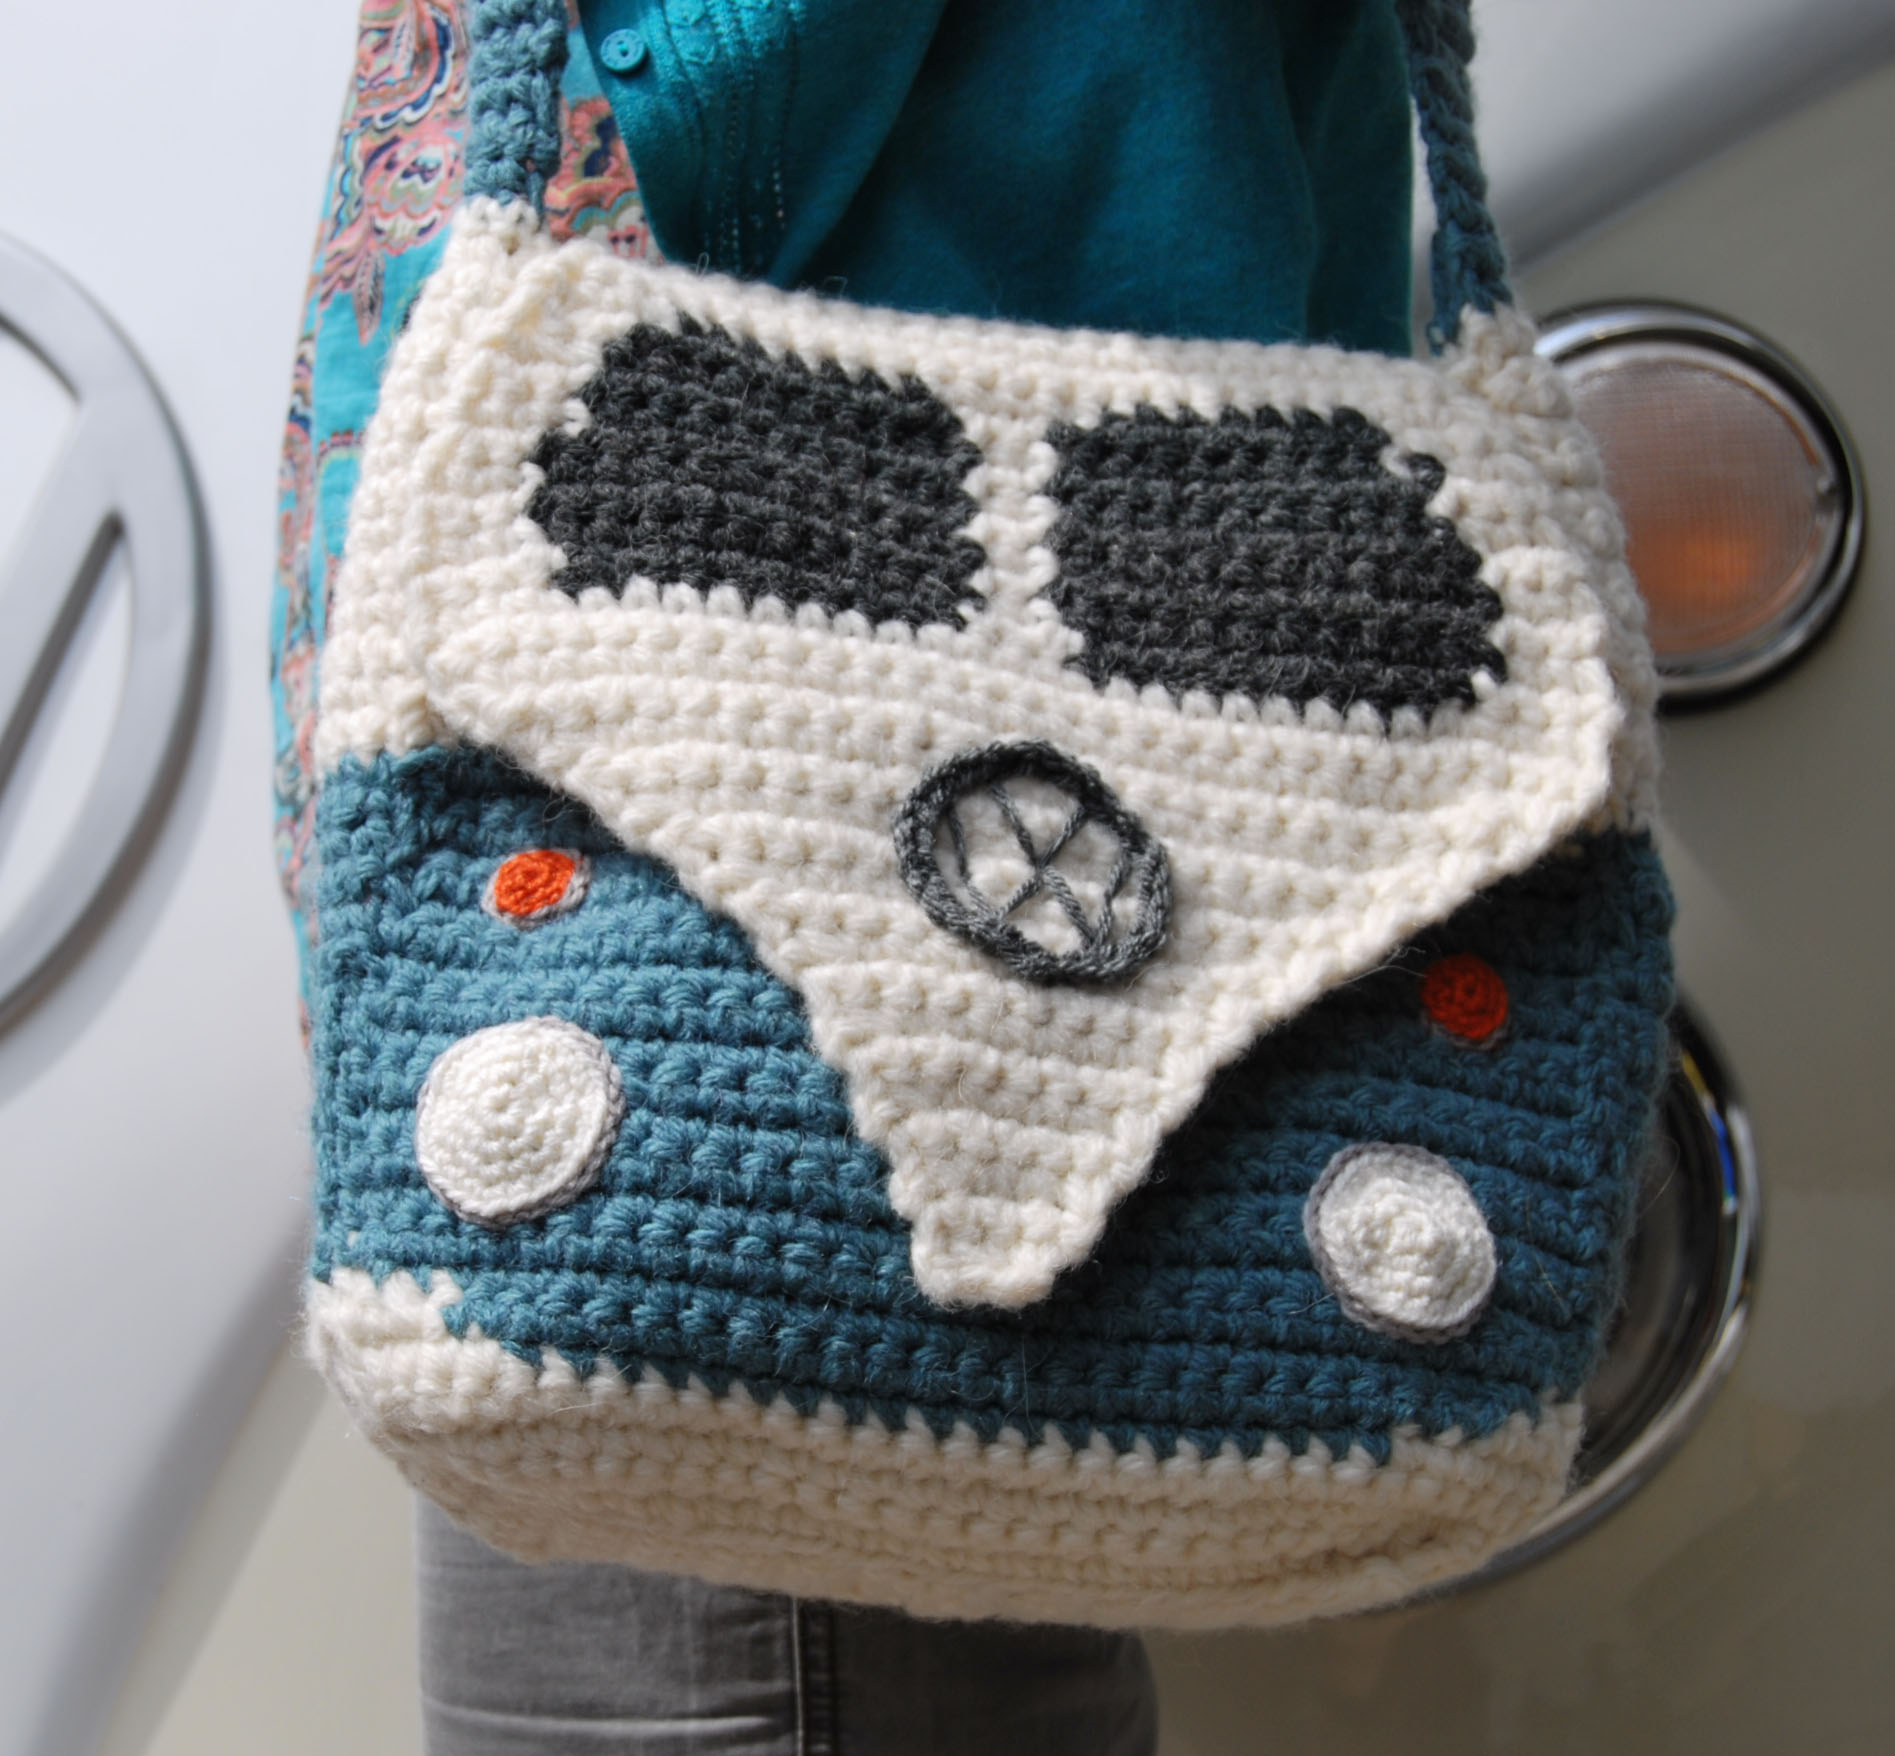 Pdf crochet pattern for a splitty campervan shoulder bag pdf crochet pattern for splitty campervan shoulder bag bankloansurffo Choice Image